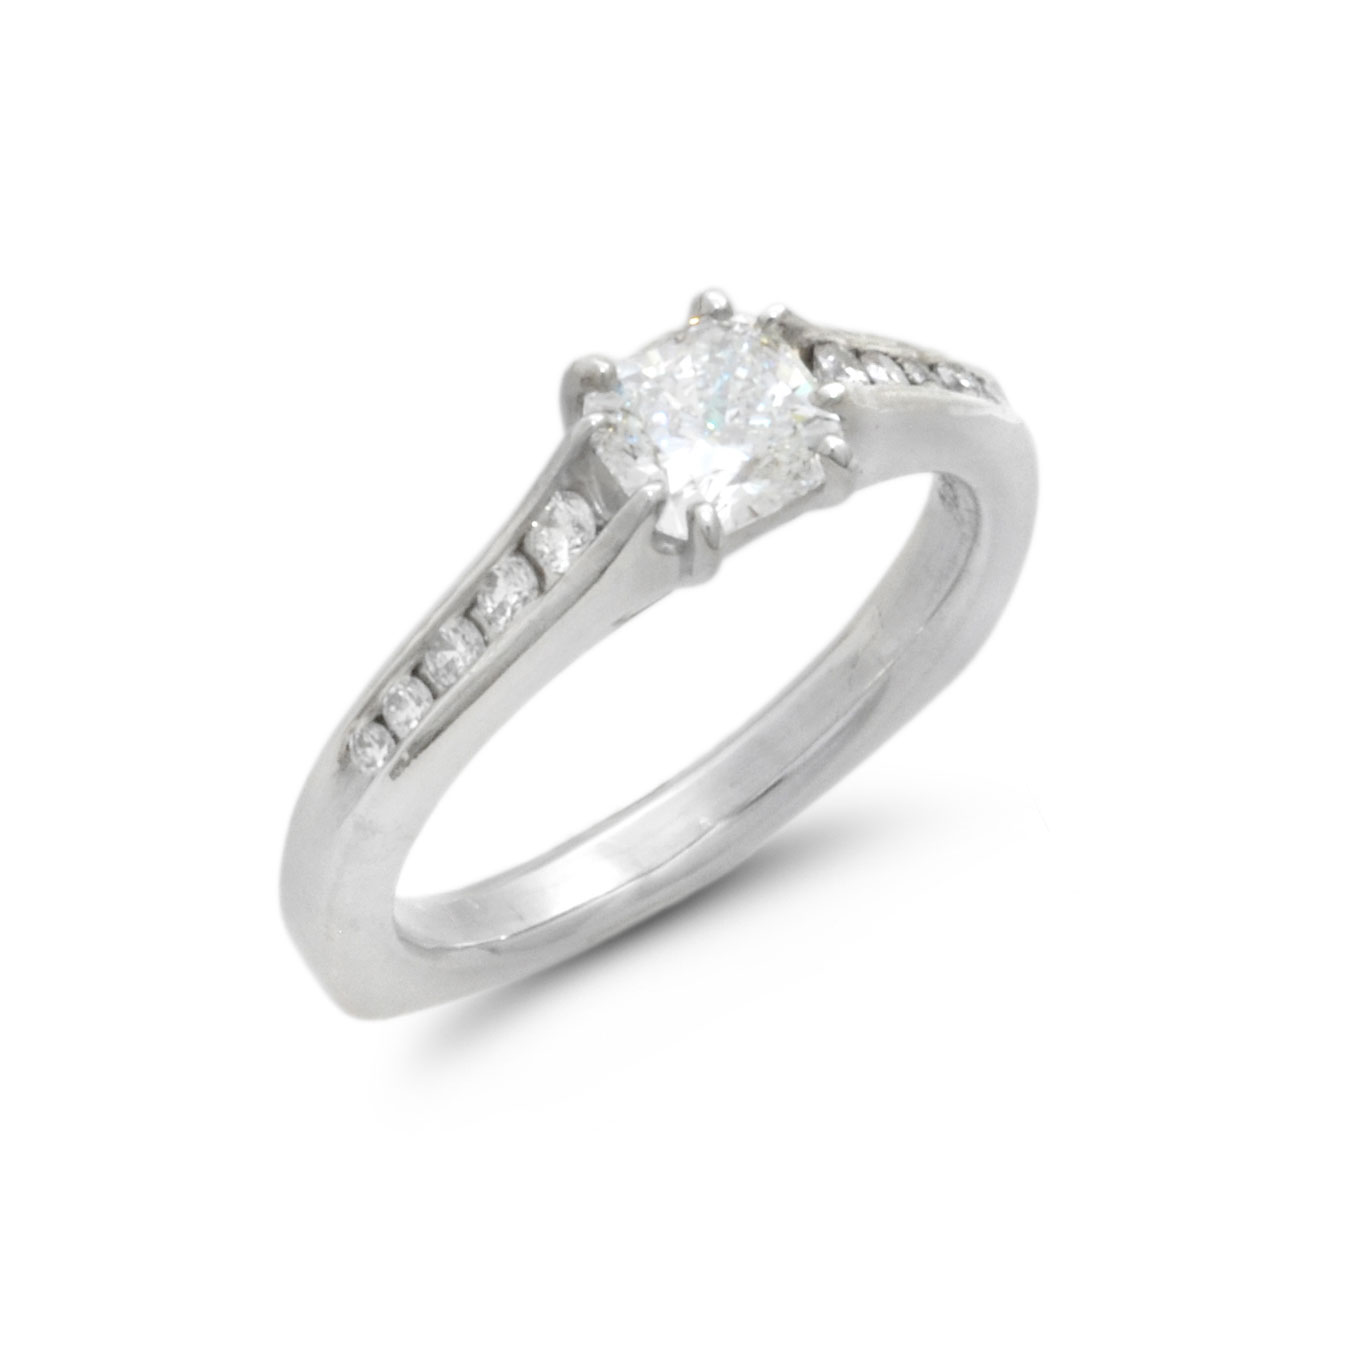 IND1000 Cushion Cut Diamond Ring